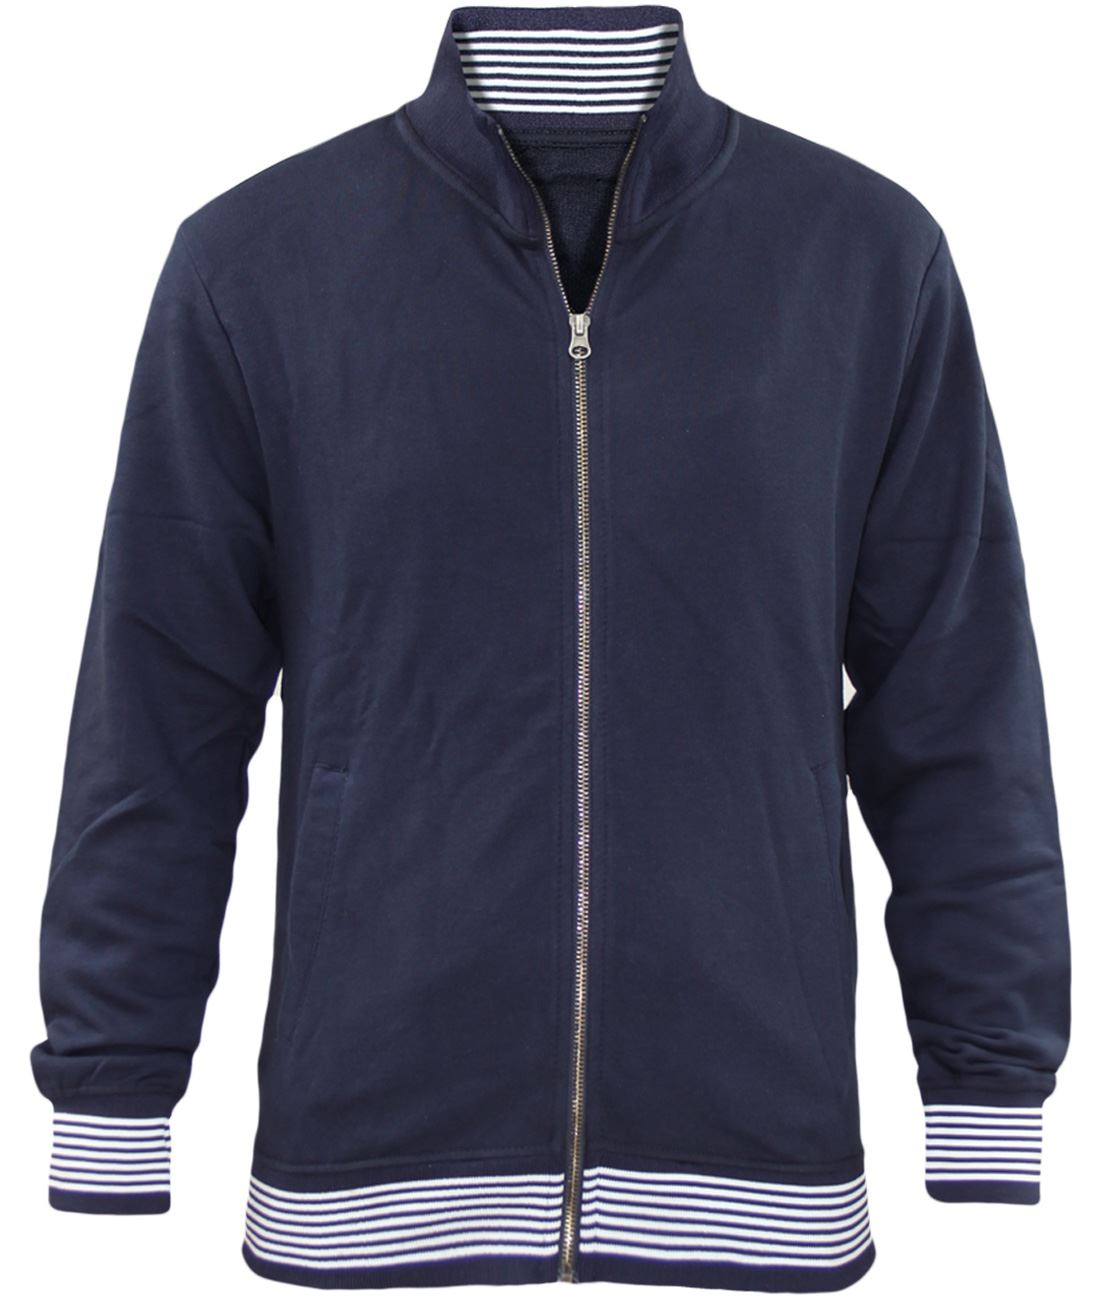 Mens-Jackets-Plain-Striped-Collar-Cuff-Zip-Sweatshirts-Ribbed-Sports-Sweater-Top thumbnail 4